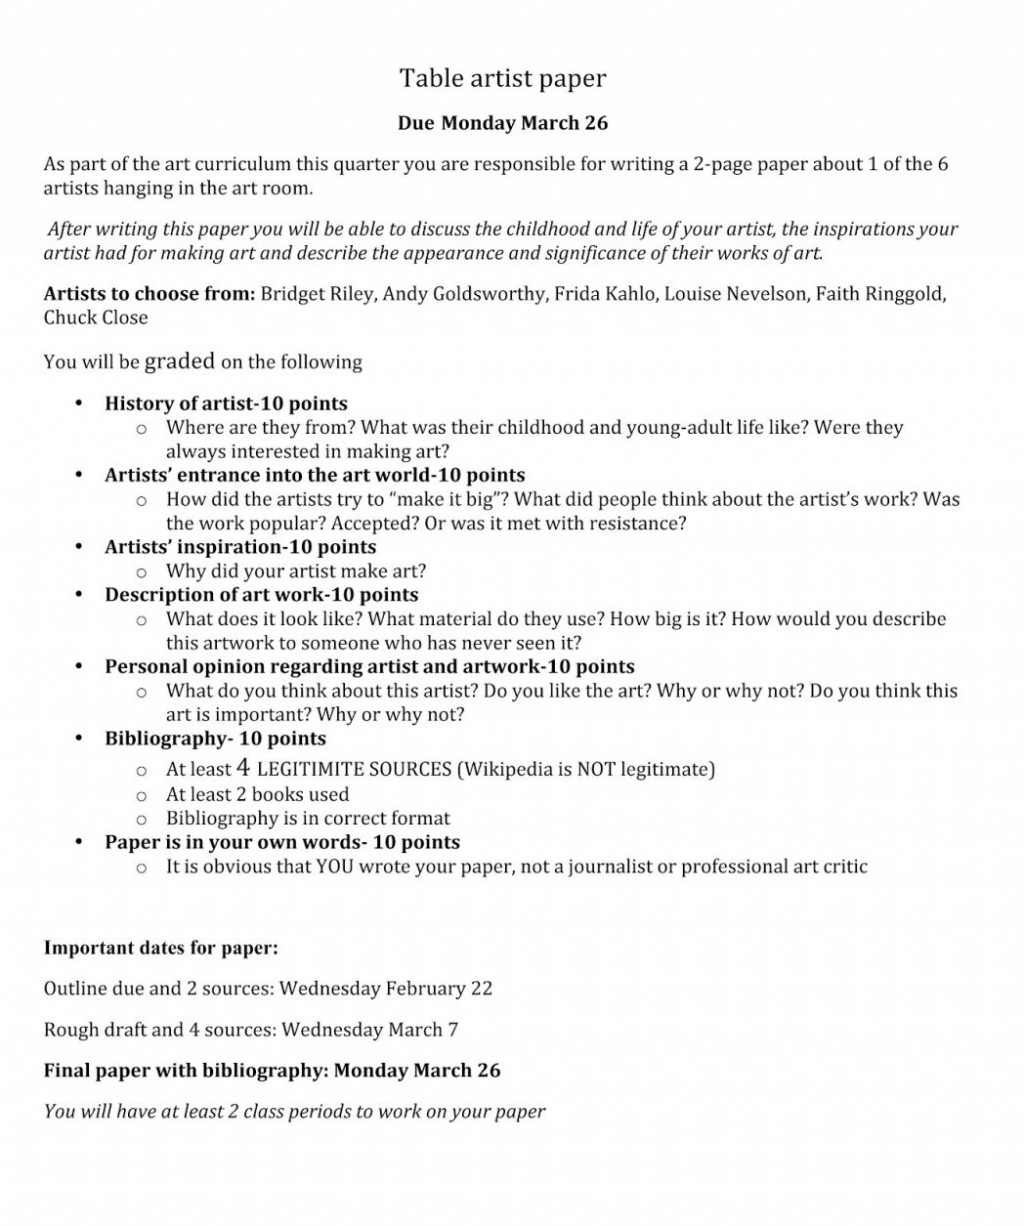 002 Art History Essays Uncategorized Impressionisms Writing Research Paper Papers Leaving20 Staggering Example Outline Large